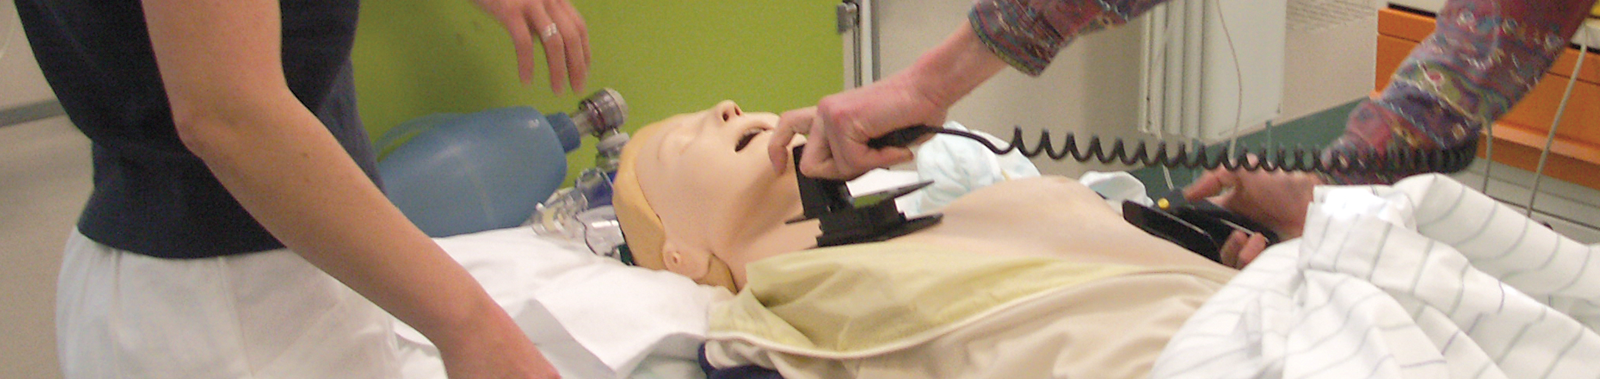 Defibrillation an einer Trainingspuppe